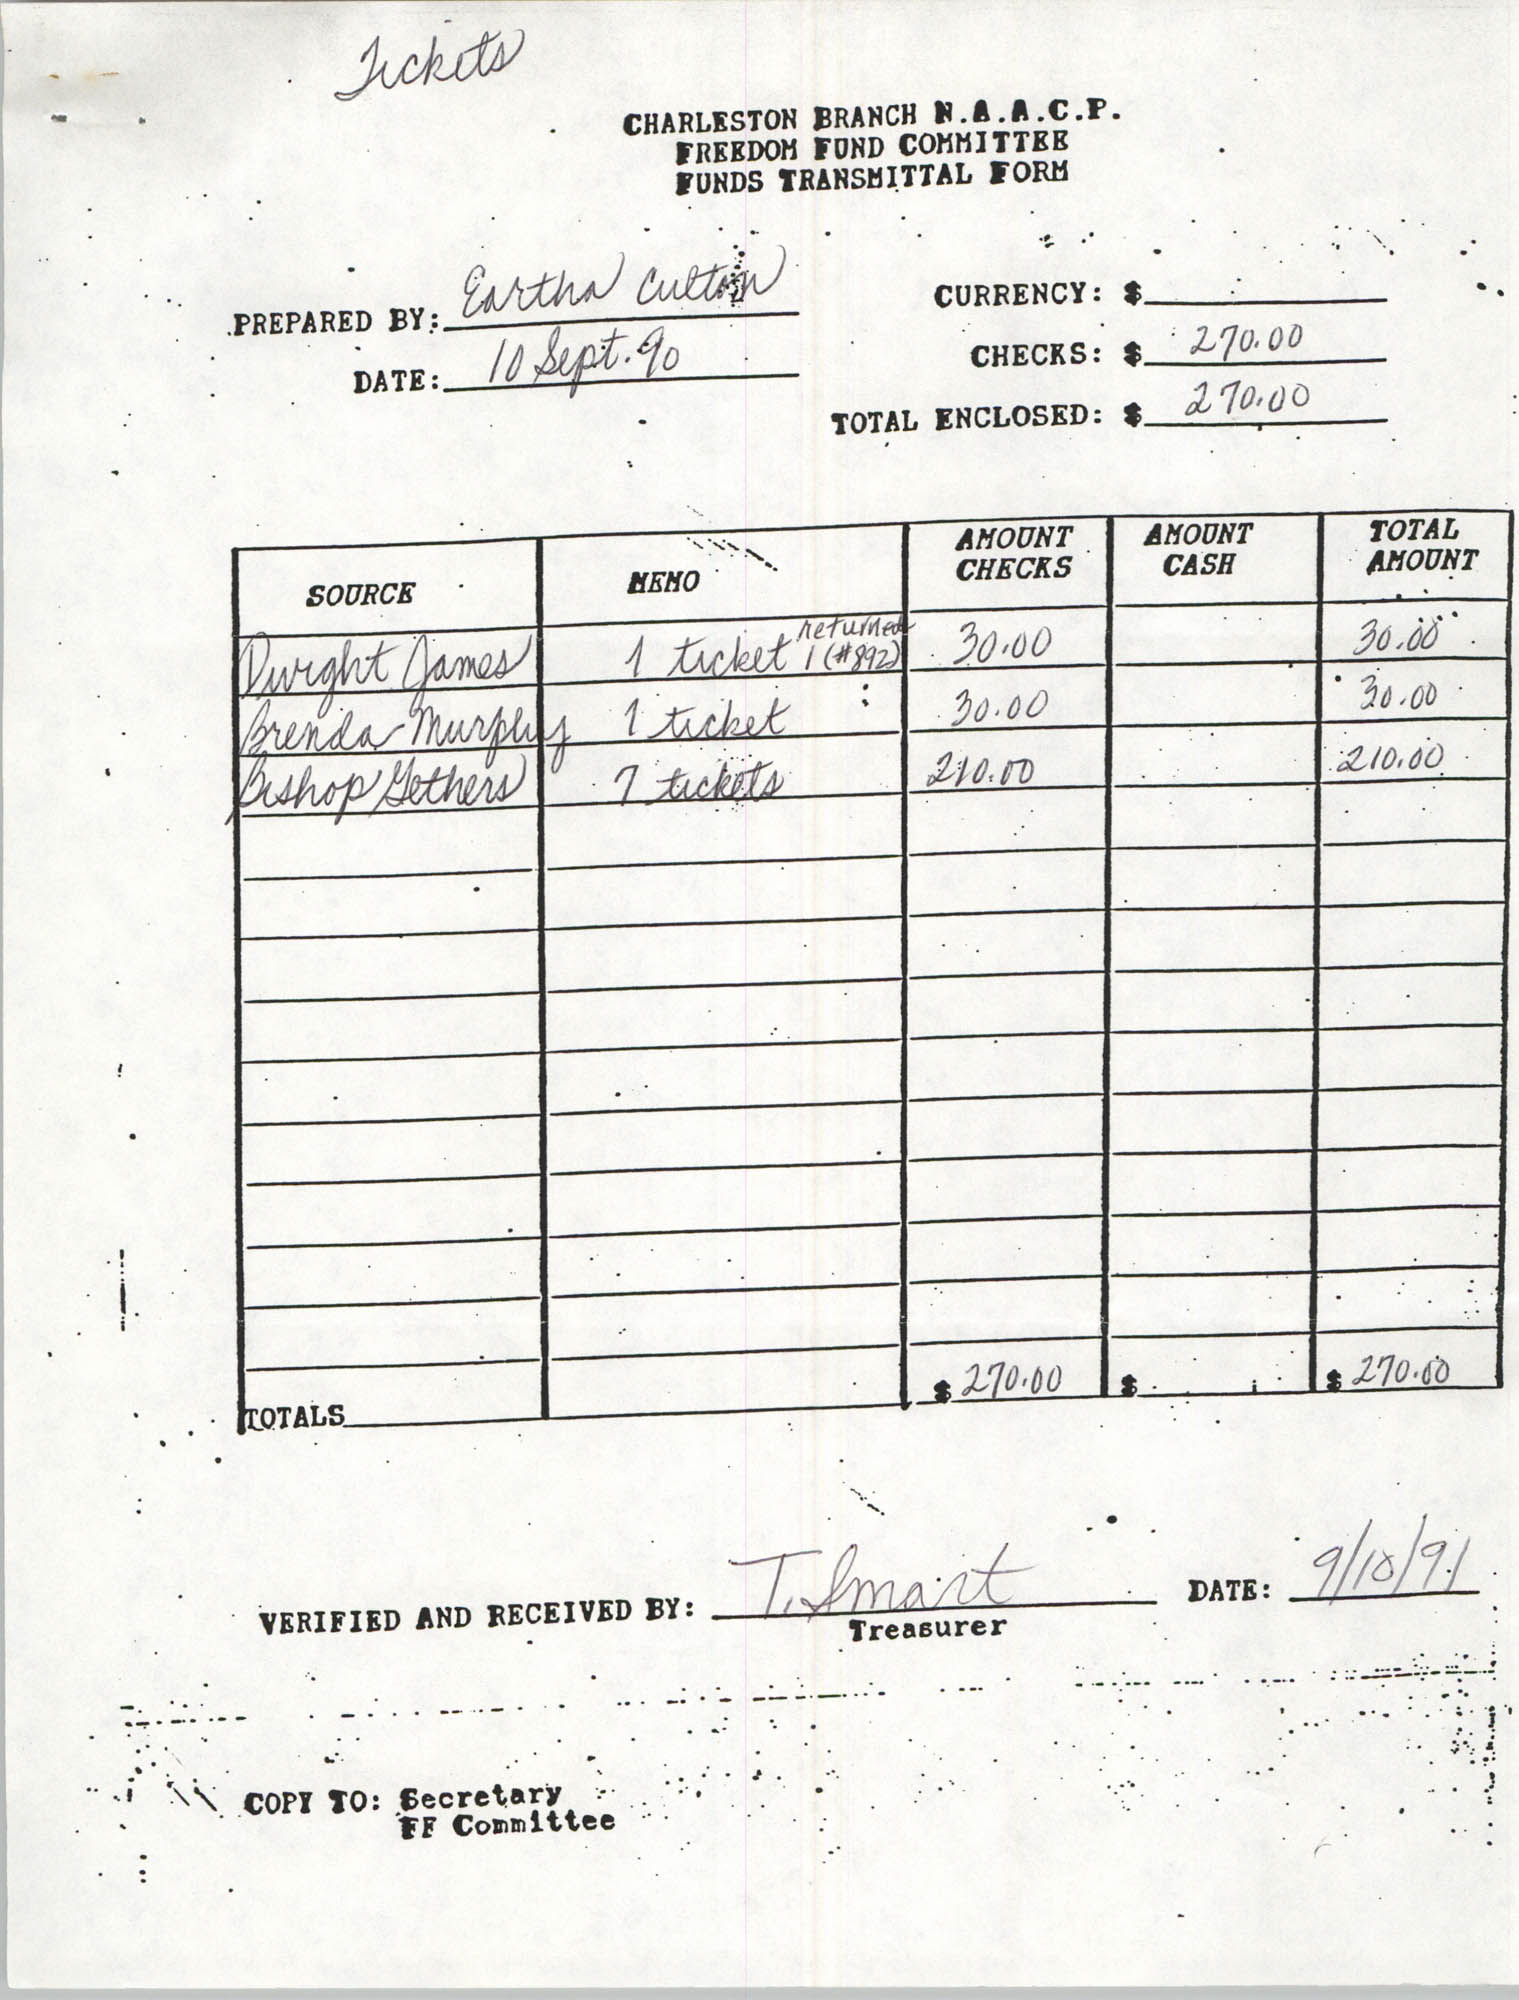 Charleston Branch of the NAACP Funds Transmittal Forms, September 1991, Page 19